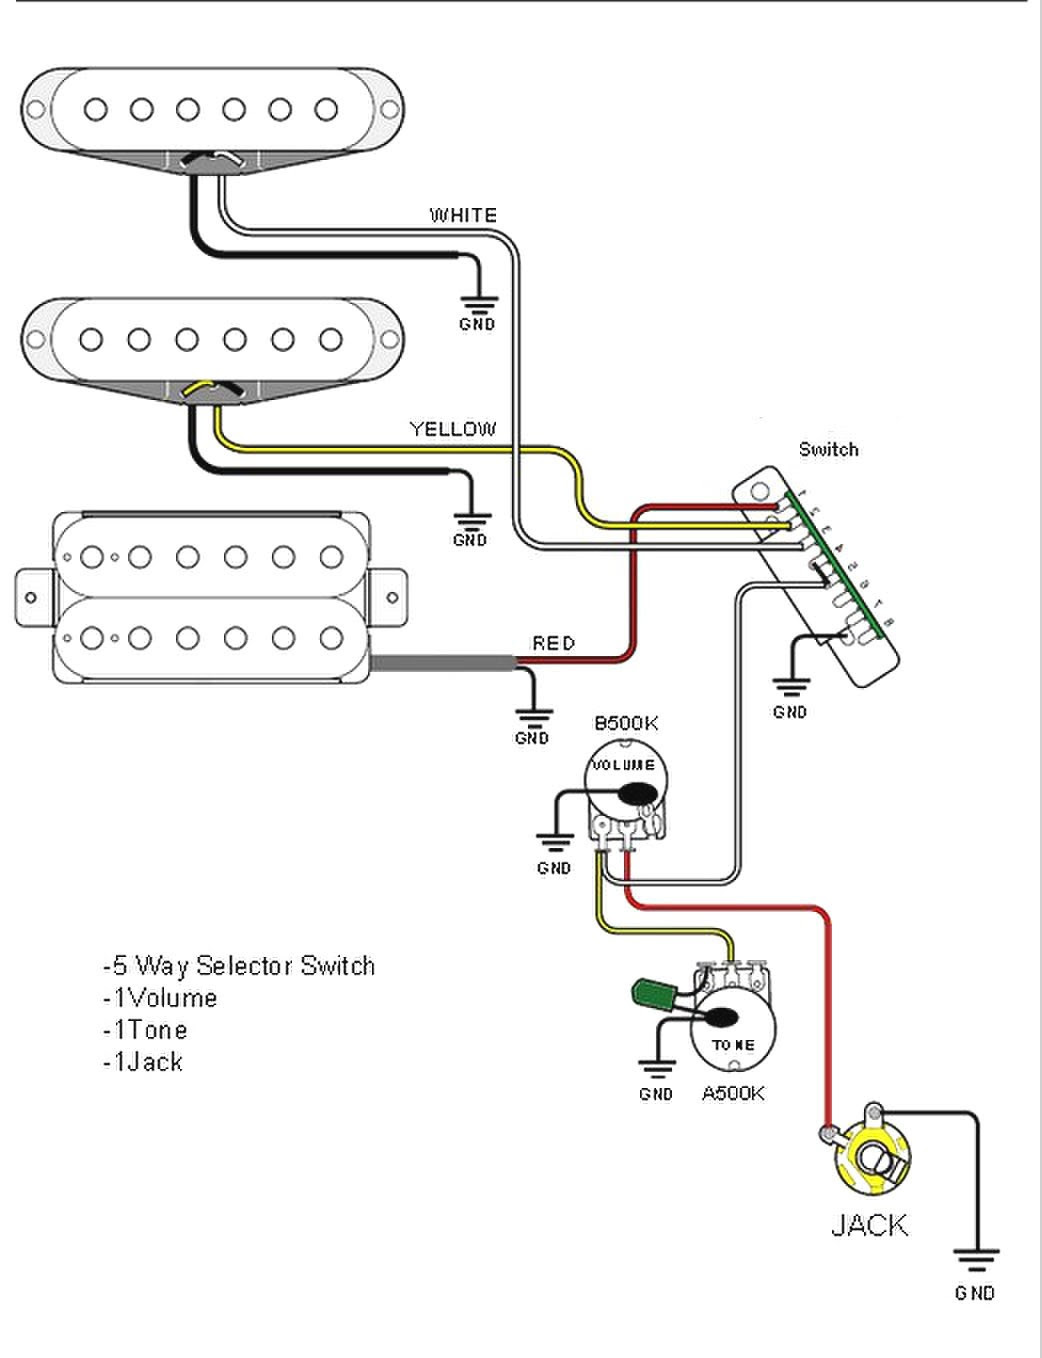 F501 1988 Bluebird Tc2000 Wiring Diagram Wiring Library